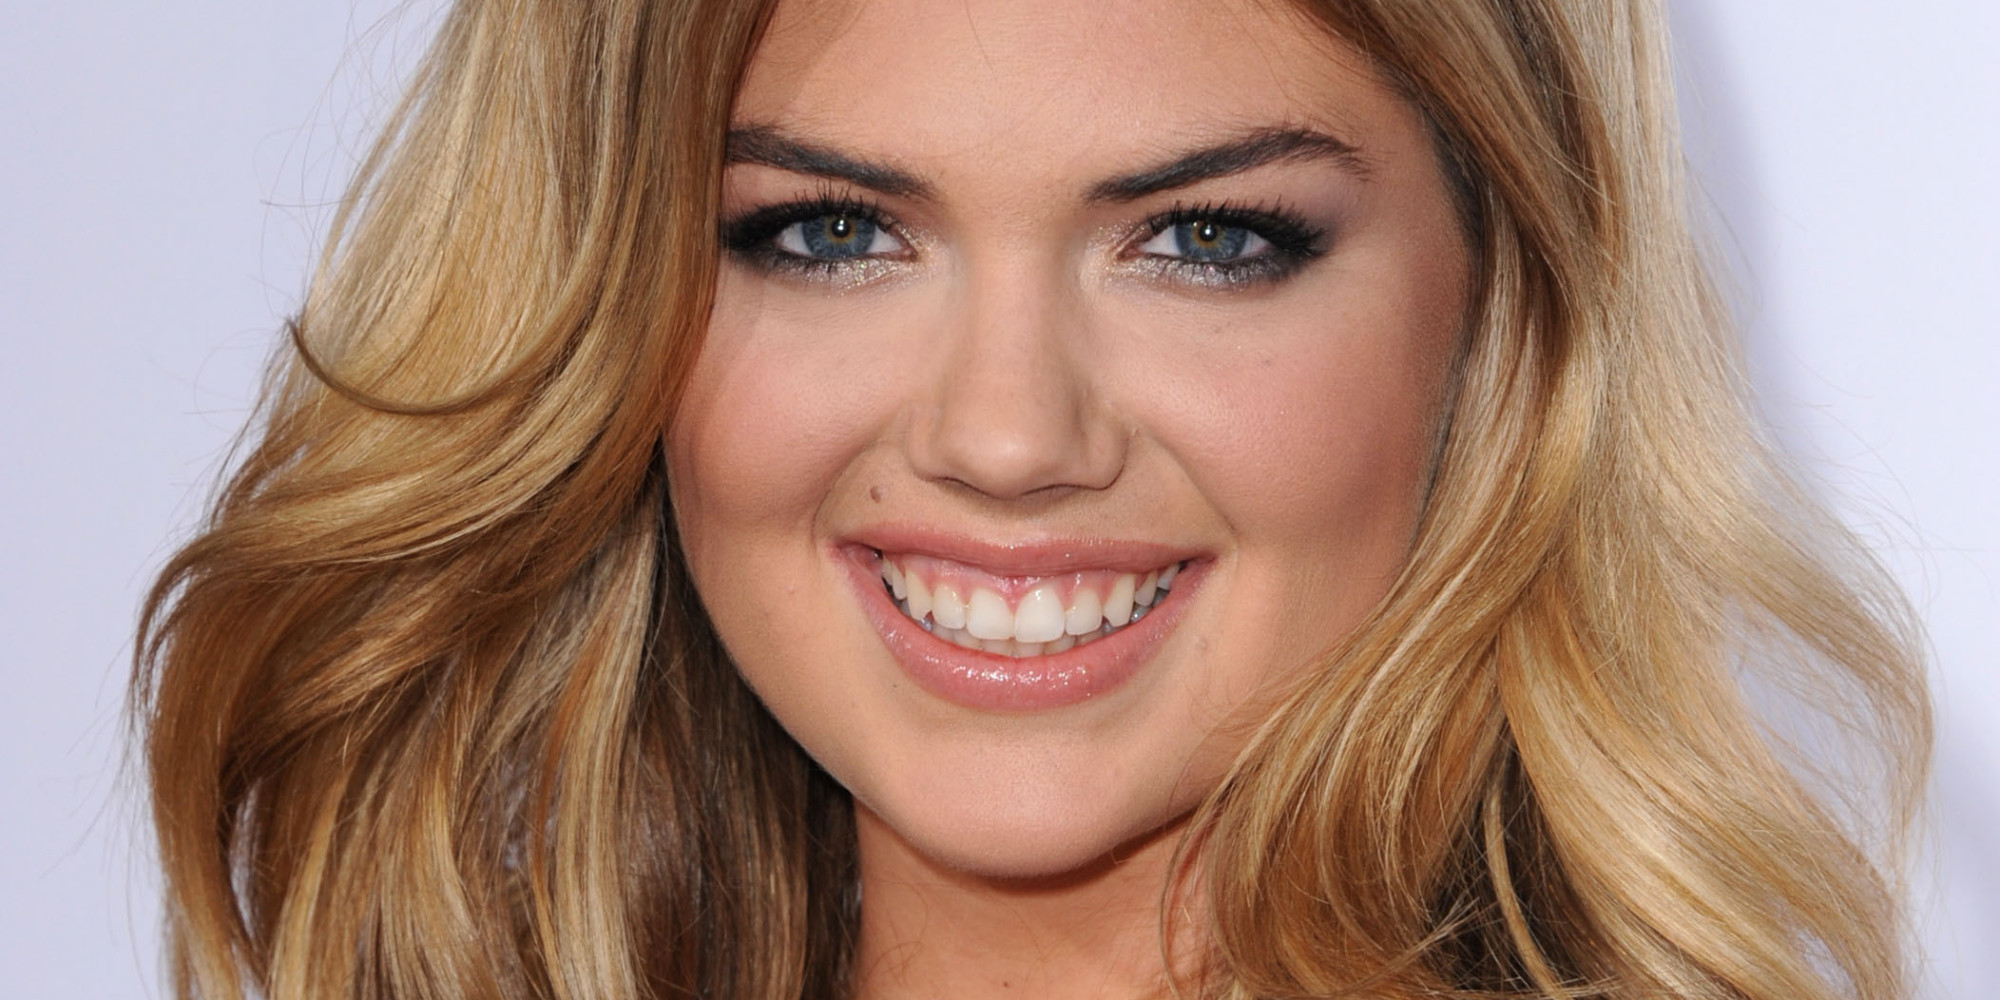 Kate upton wallpapers high resolution and quality download kate upton pictures voltagebd Images